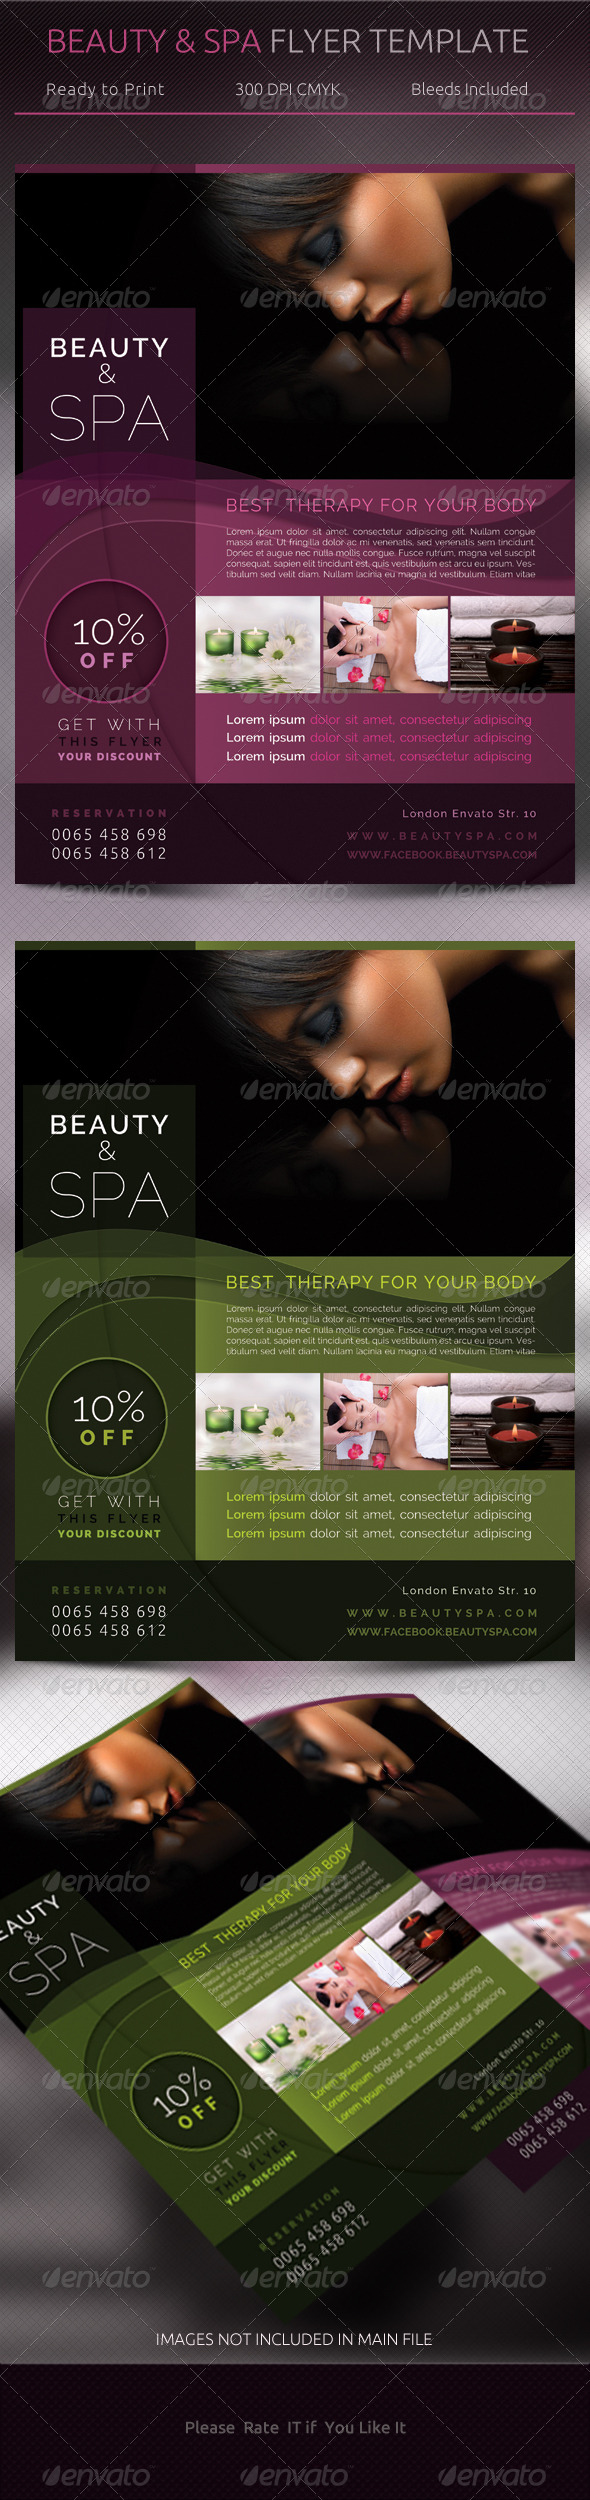 GraphicRiver Beauty & Spa Flyer Template 5178854